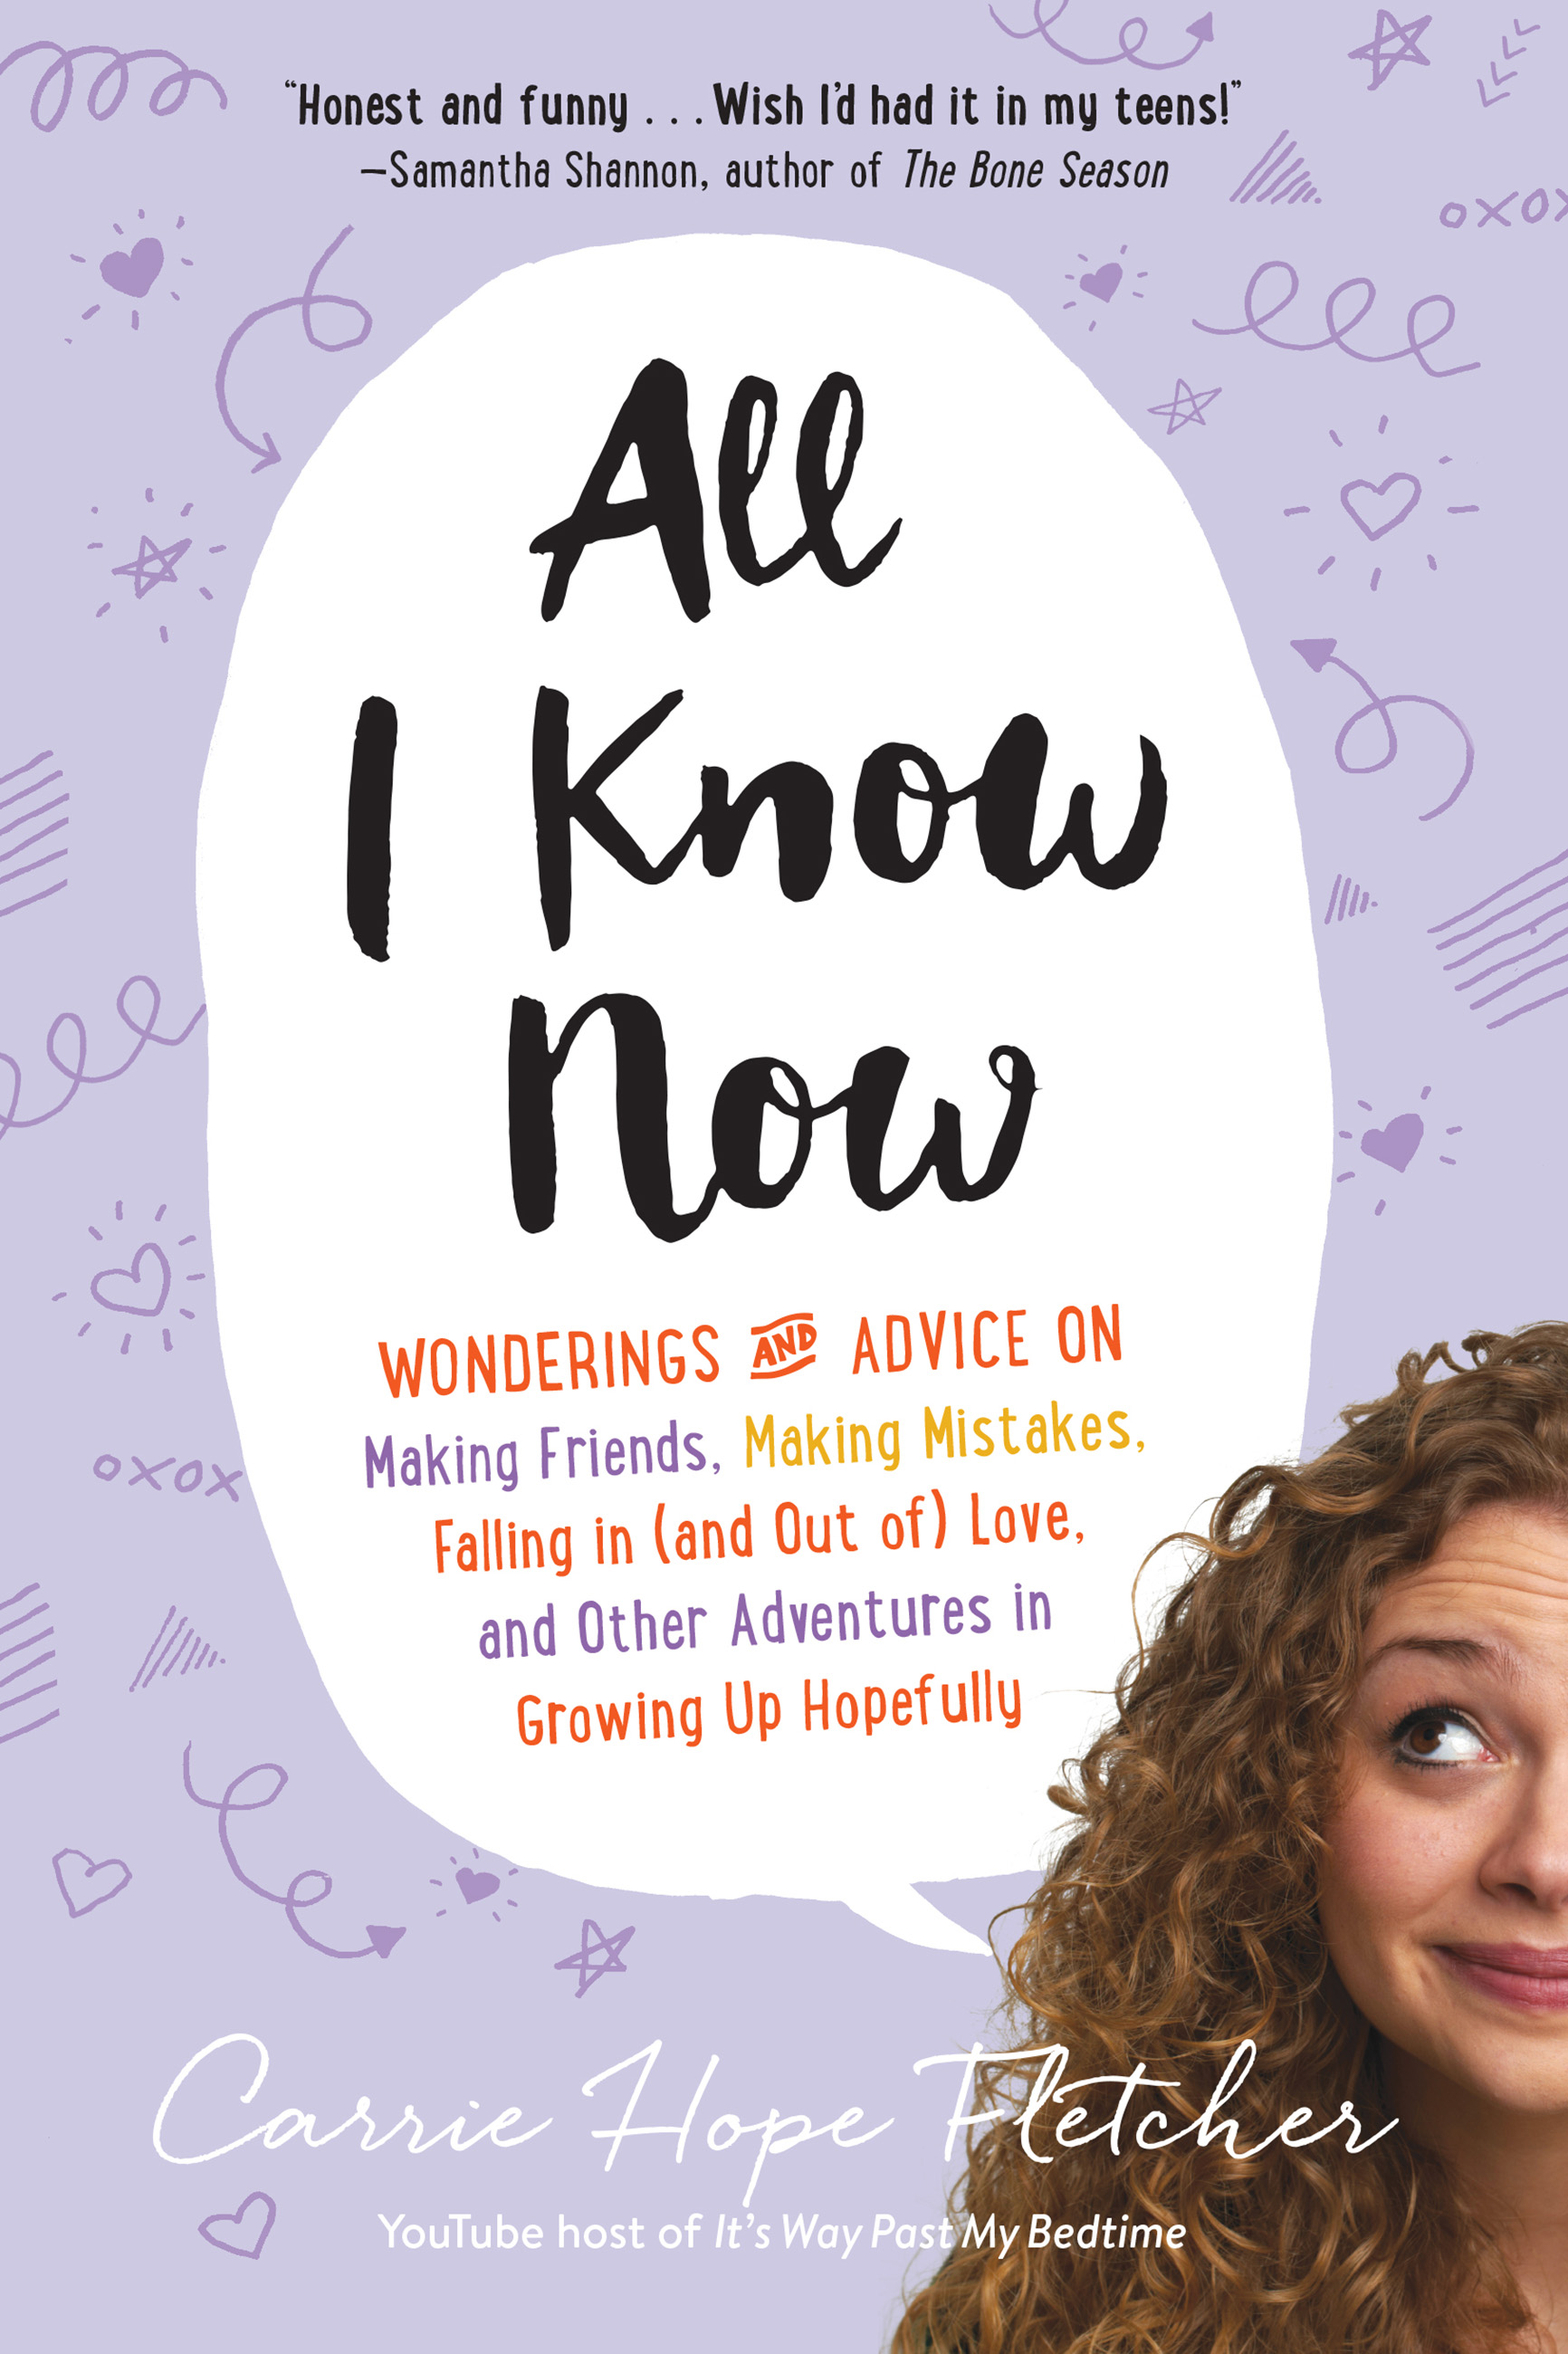 All I Know Now Wonderings and Advice on Making Friends, Making Mistakes, Falling in (and out of) Love, and Other Adventures in Growing Up Hopefully